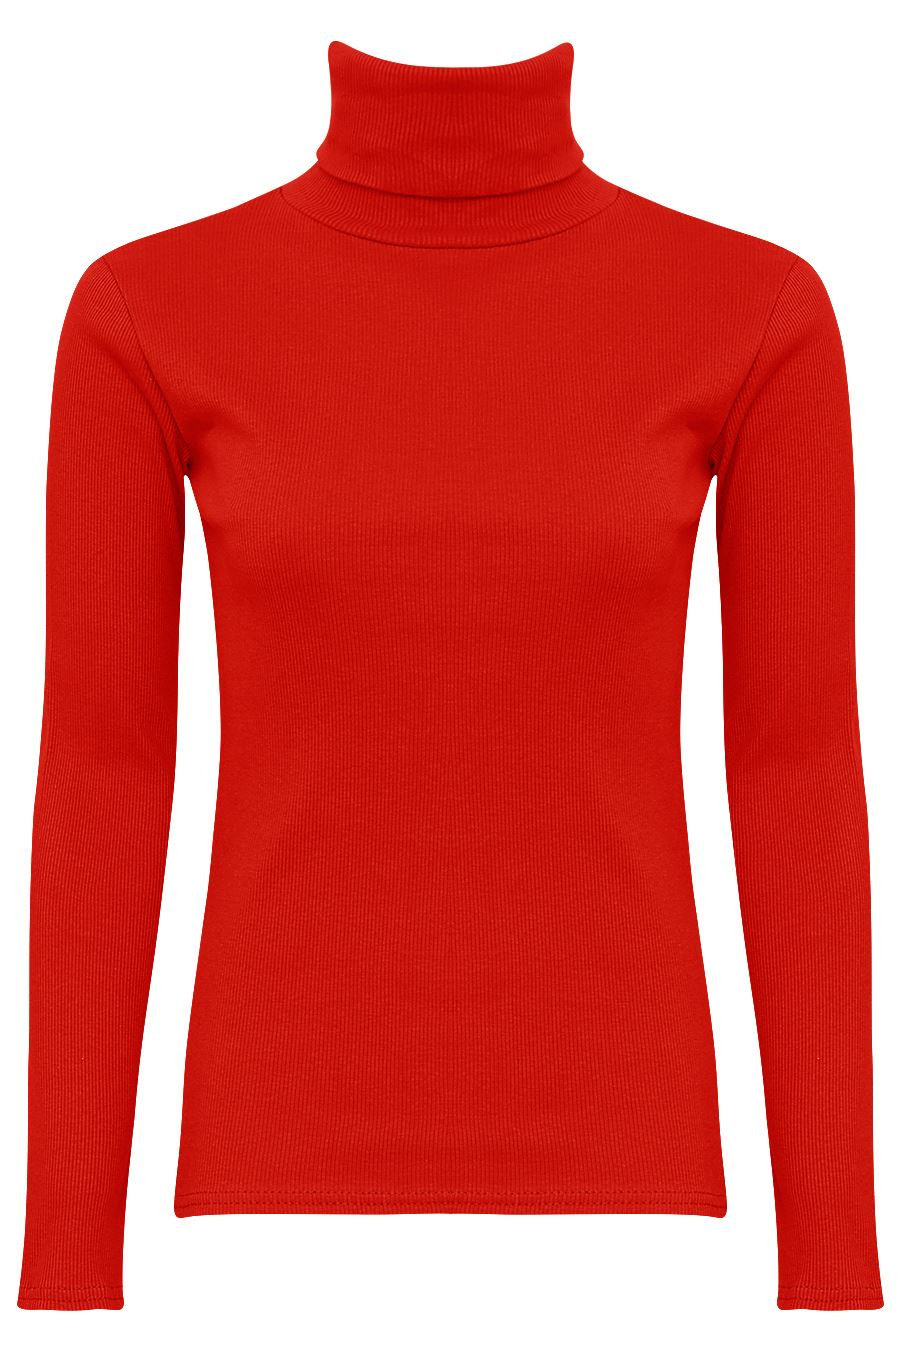 WOMENS LONG SLEEVES TURTLE NECK TOP LADIES RIBBED STRETCHY ...